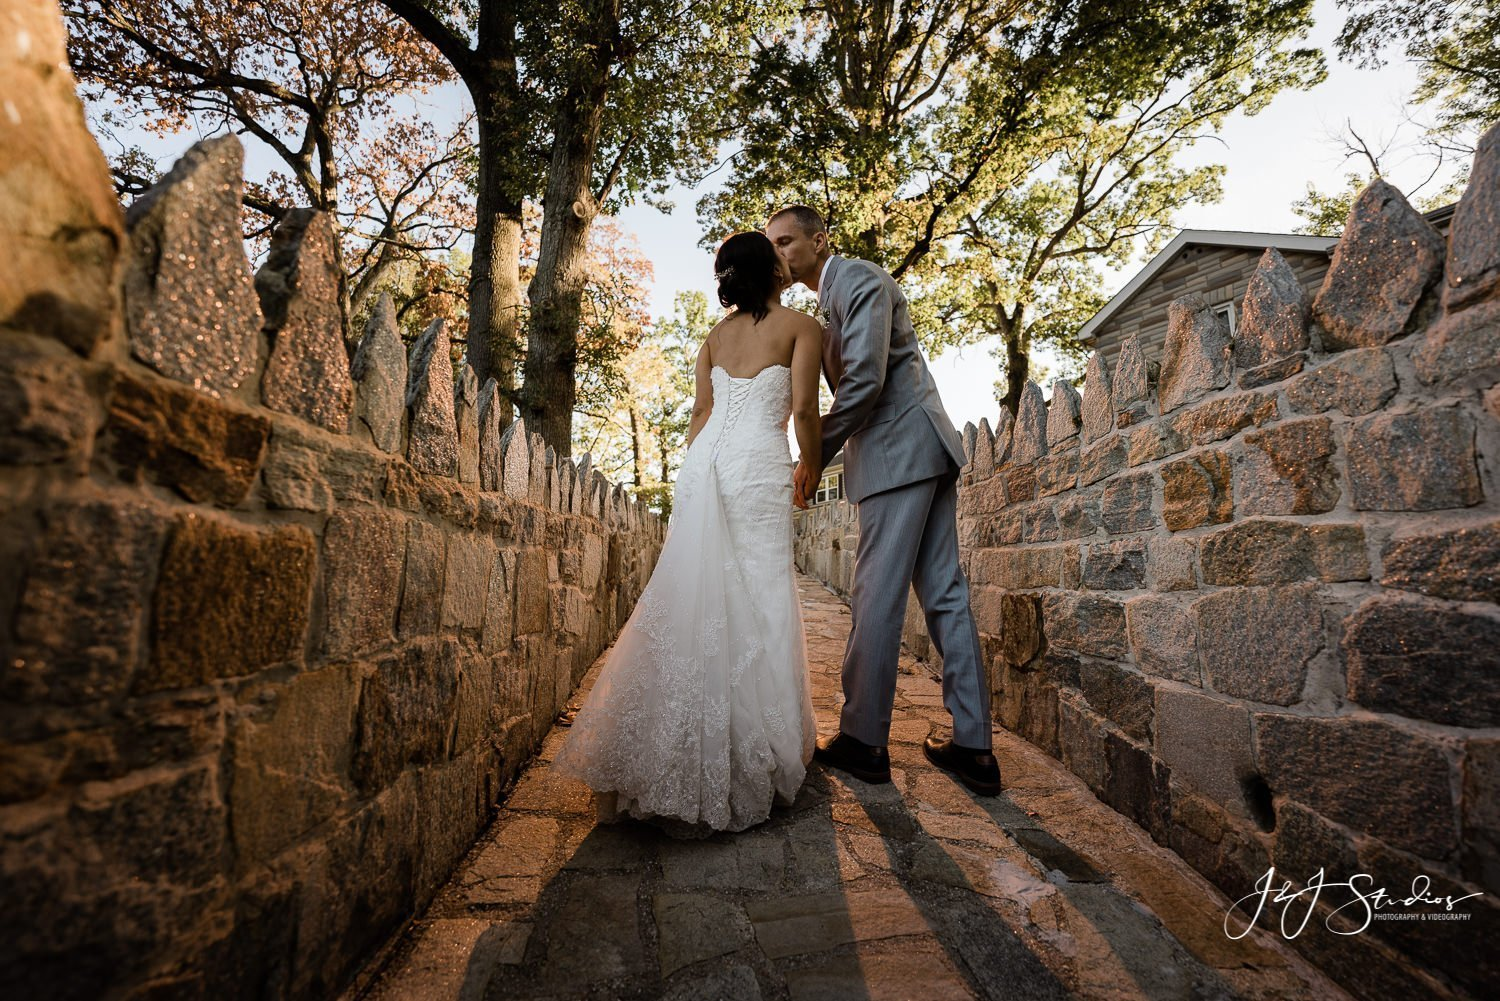 bride and groom walking up stone path at sunset photo by John Ryan J&J Studios